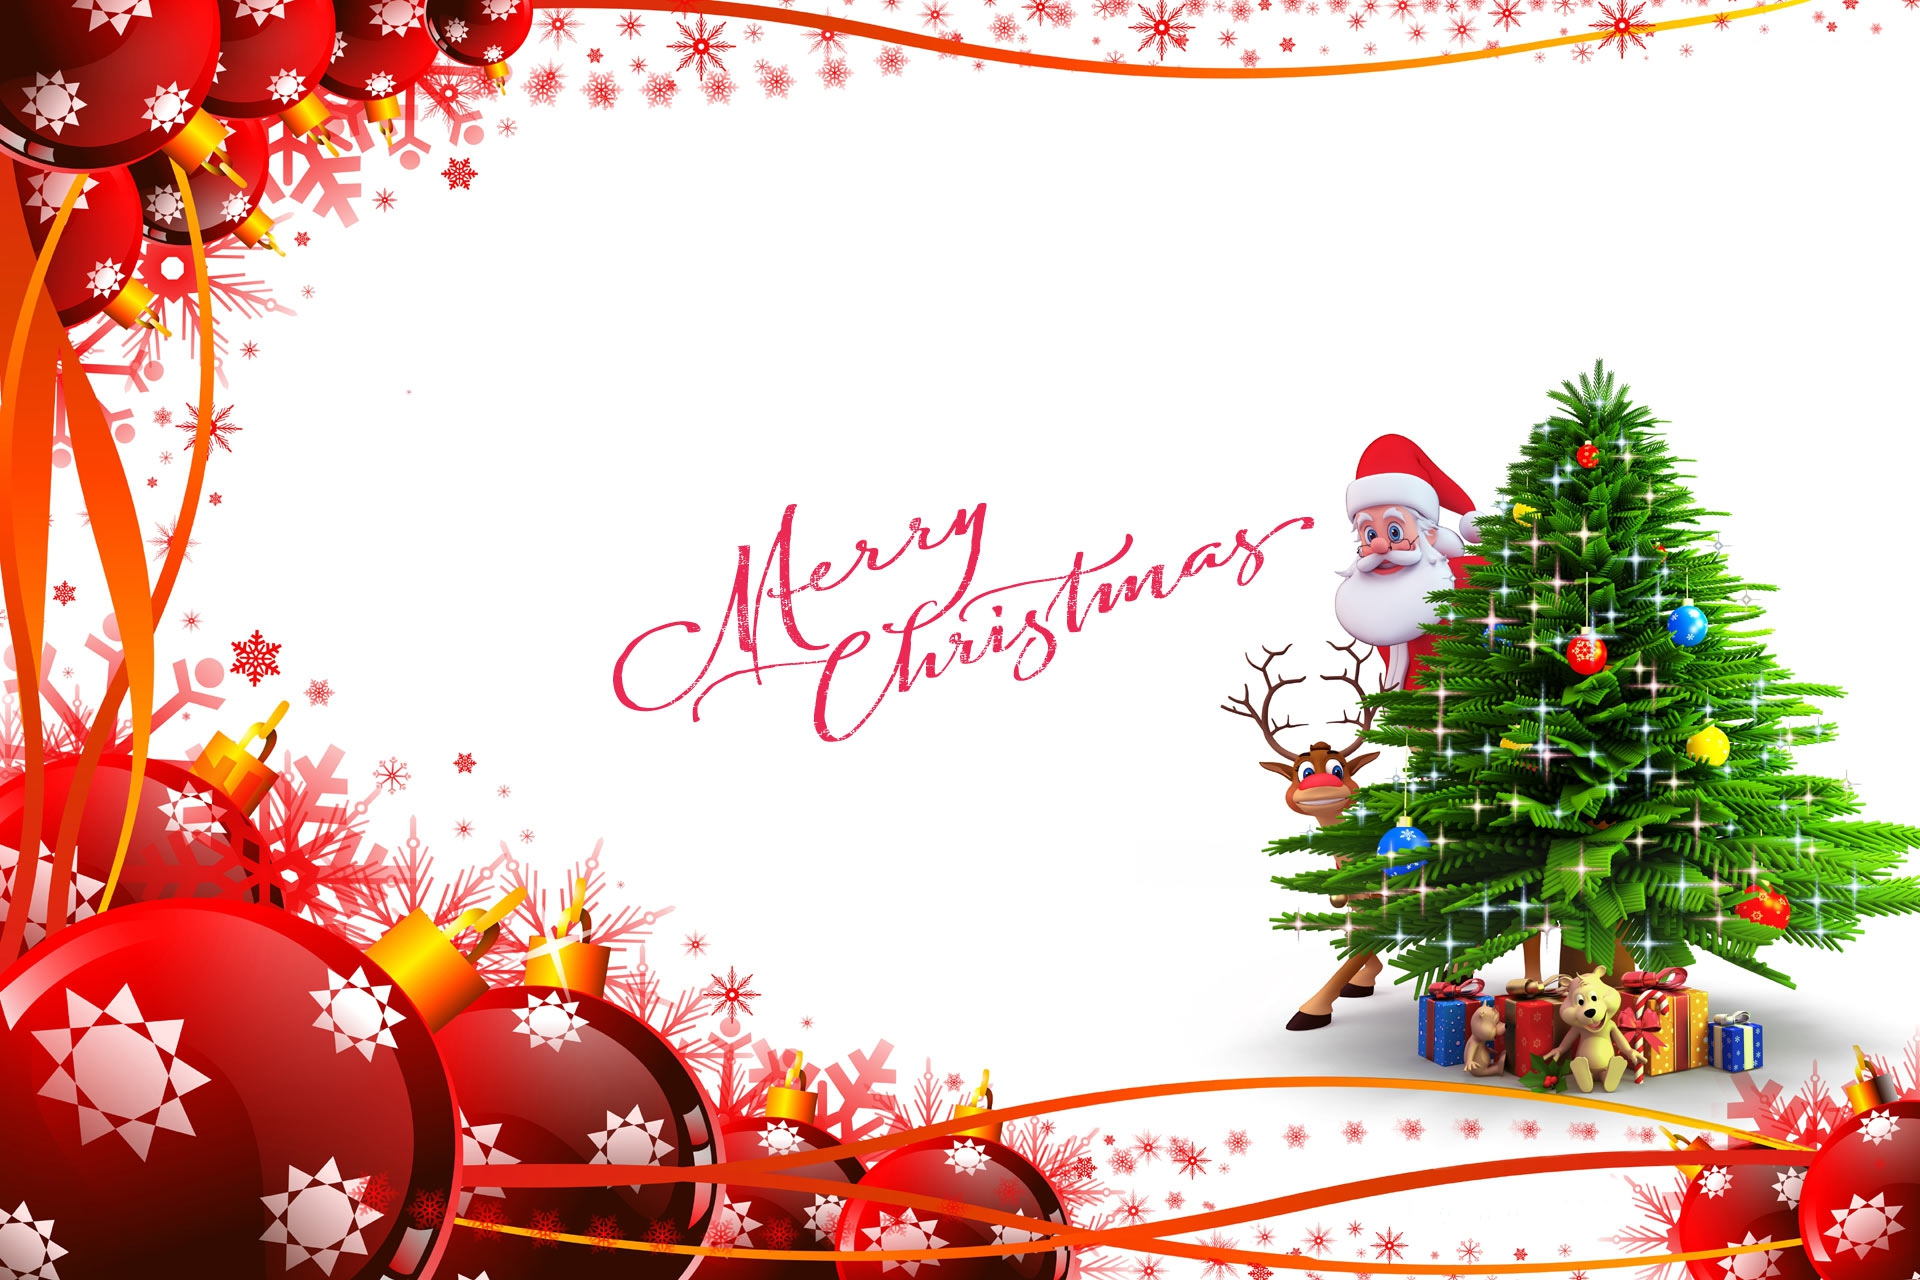 Merry Christmas Hd Wallpaper Background Image 1920x1280 Id